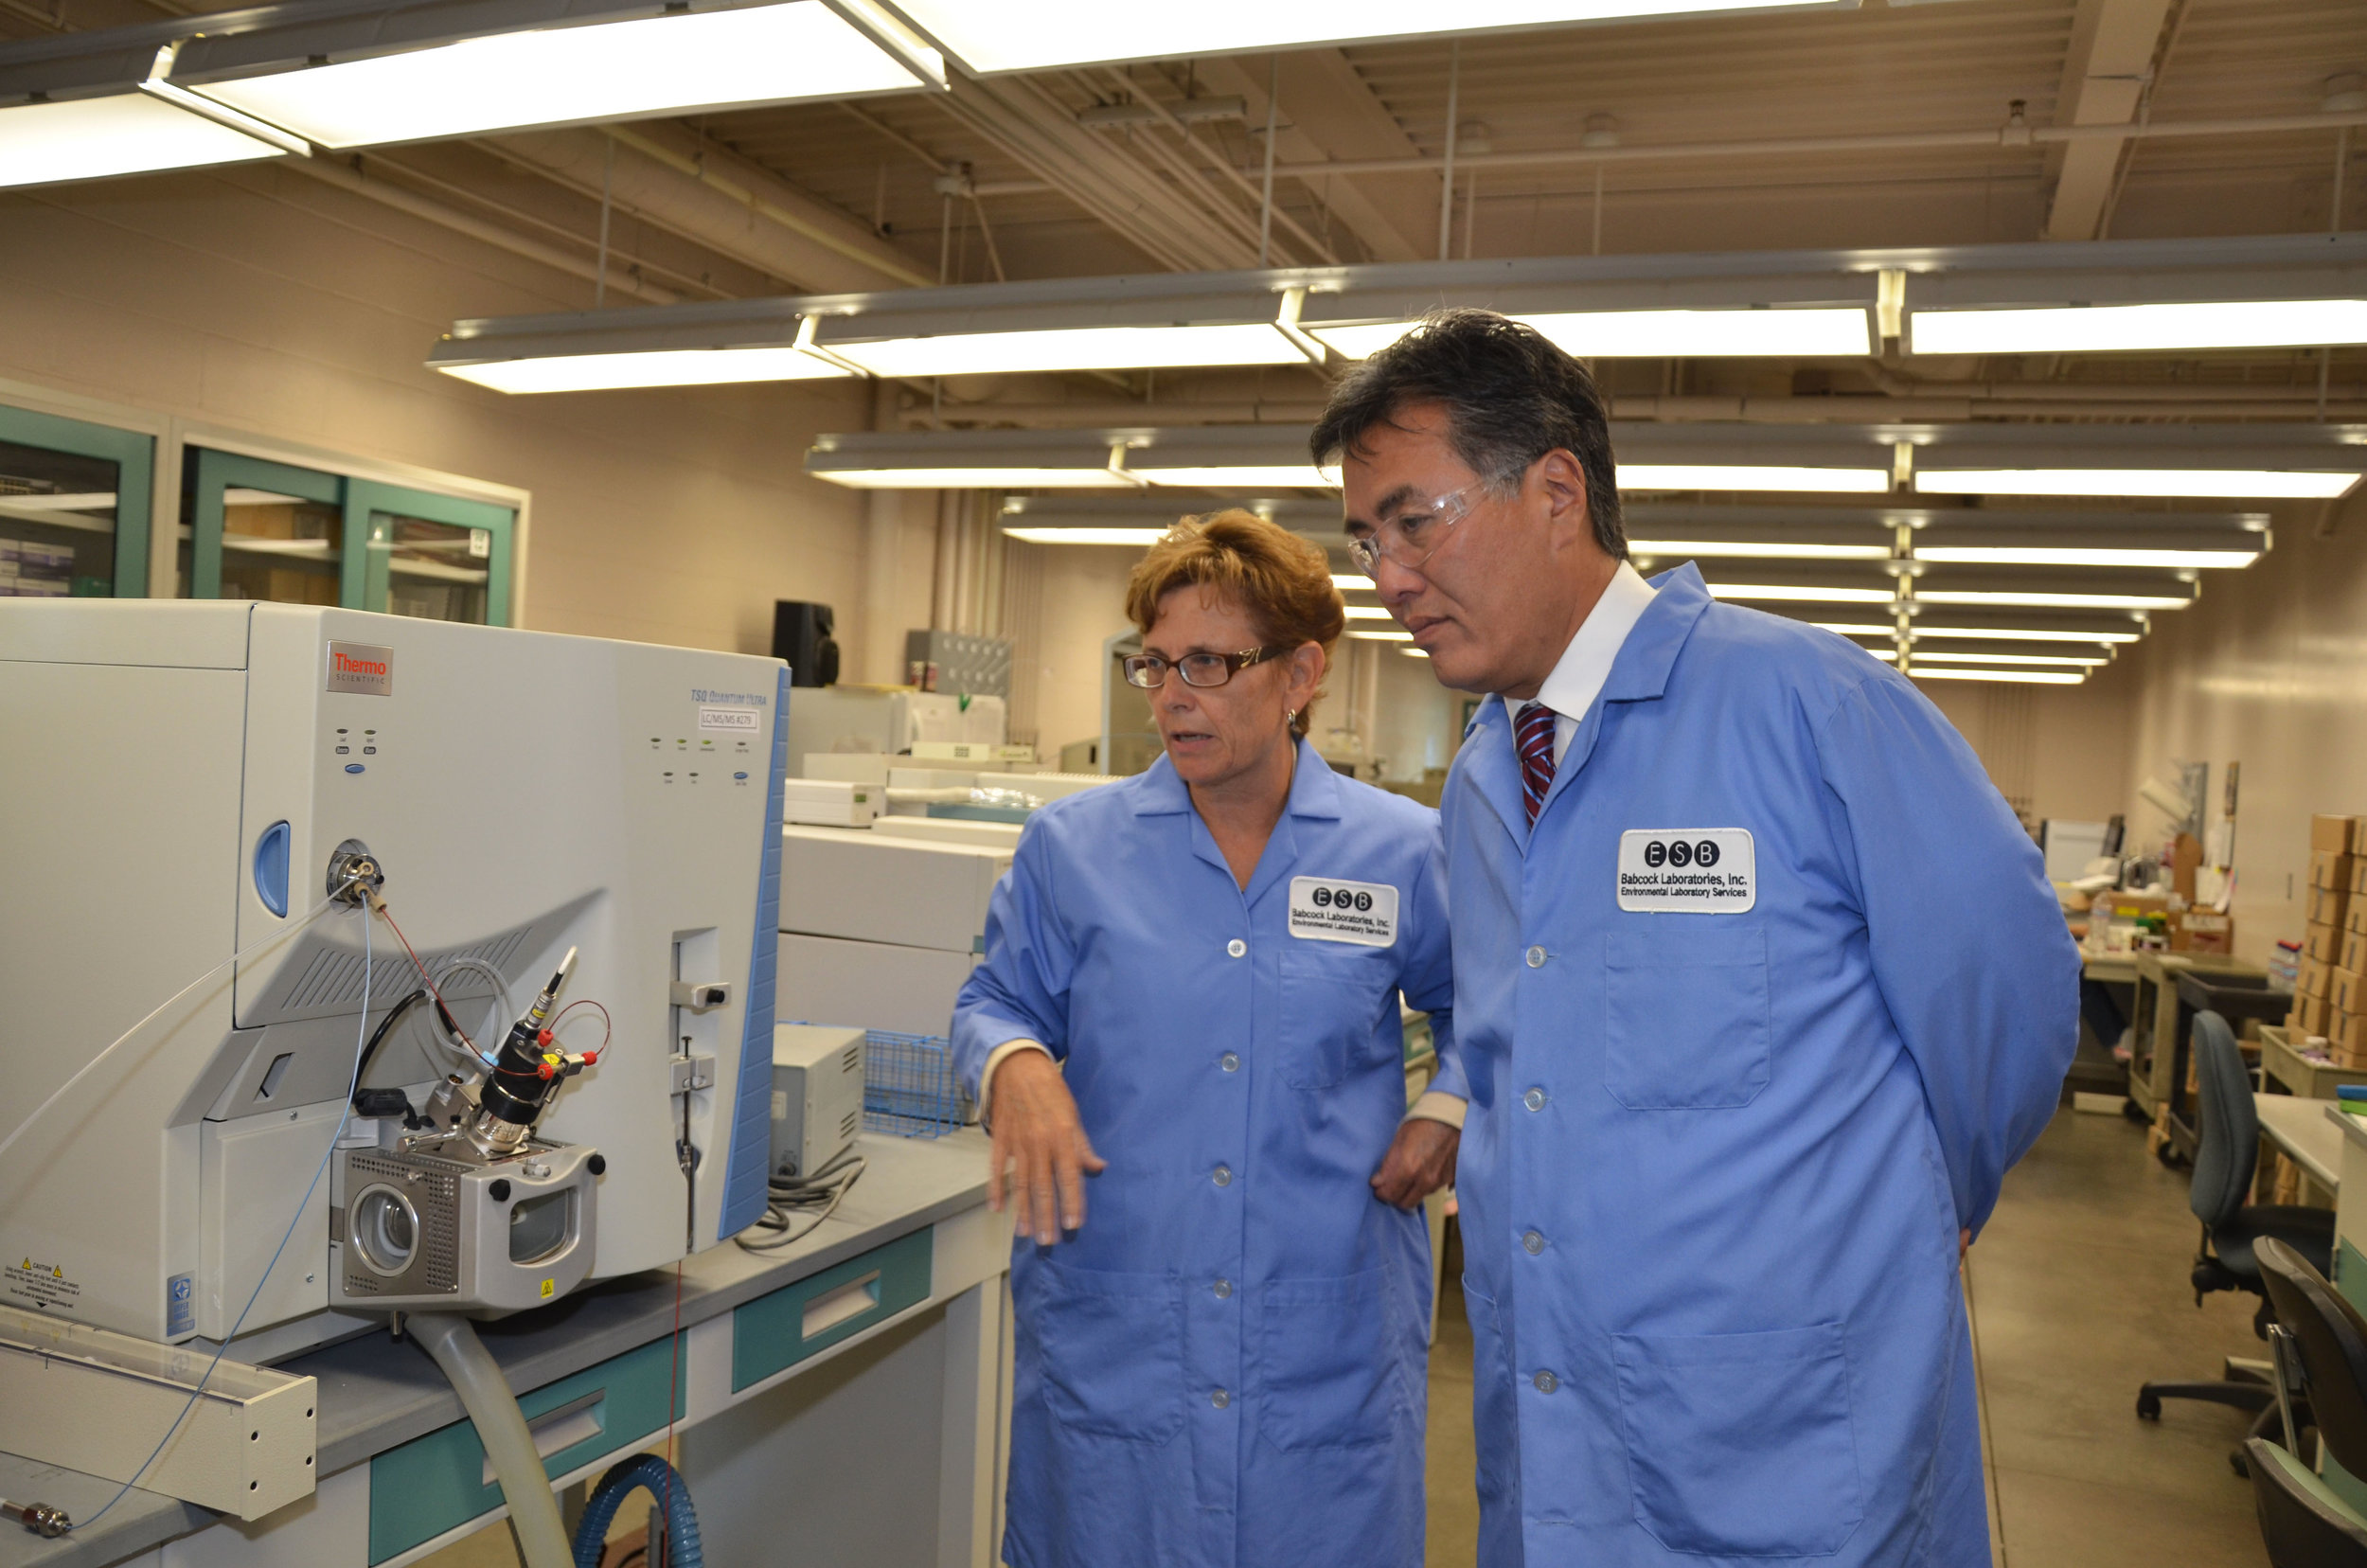 Babcock Labs is an advocate for supporting small business and has hosted Riverside representatives such as Congressman Mark Takano,Councilman Andy Melendrez, and Mayor Rusty Bailey